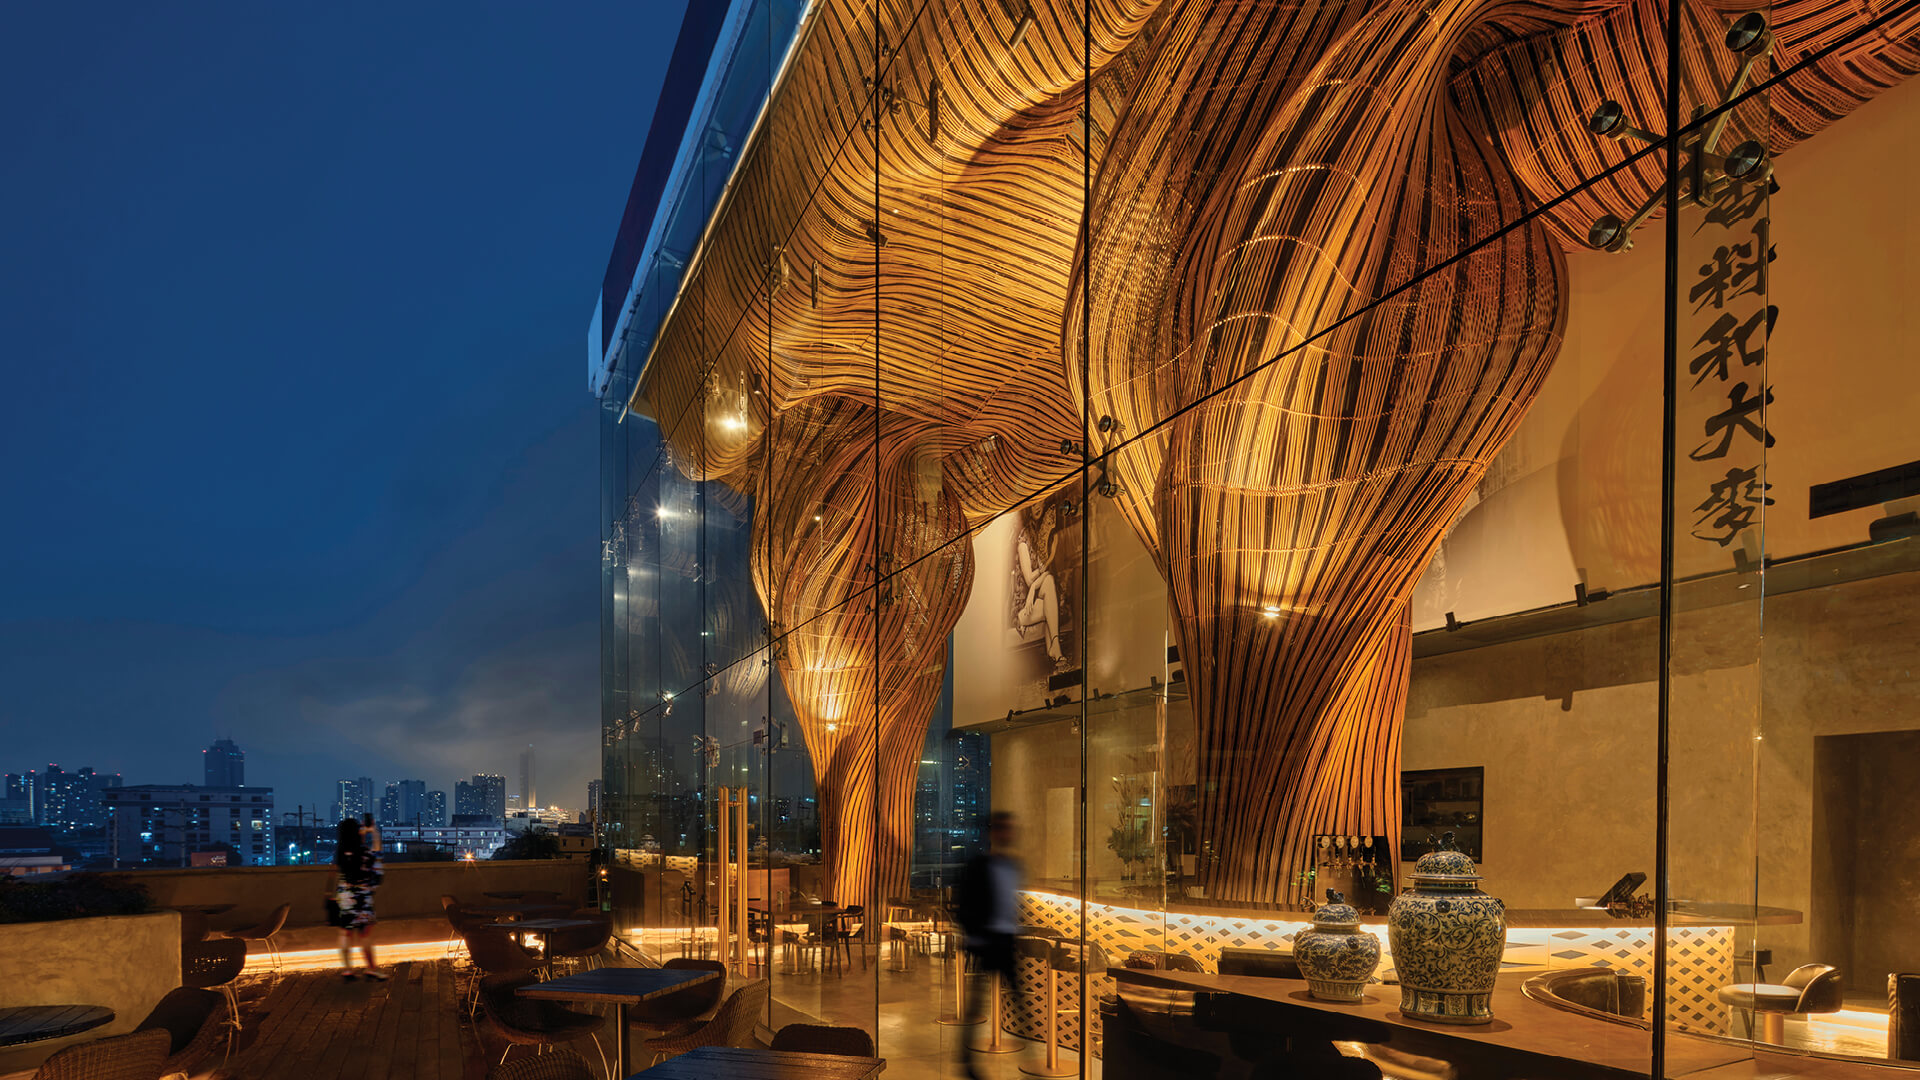 Spice and Barley restaurant's interiors and rattan columns by Enter Projects Asia | Spice and Barley Interiors | Enter Projects Asia/ The Rattan Project | STIRworld